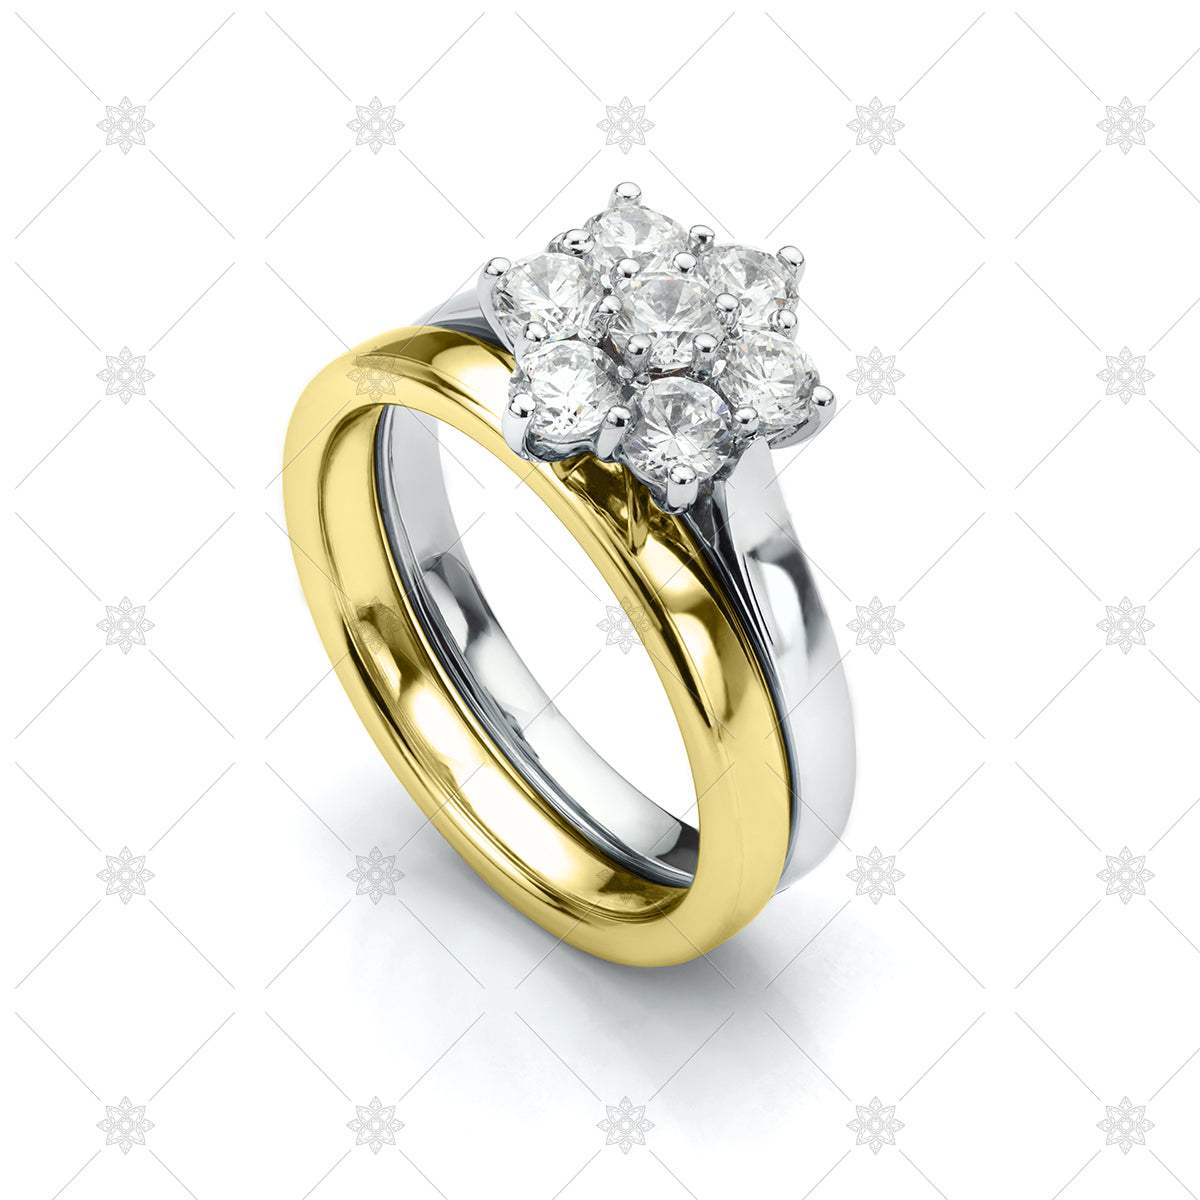 Halo engagement ring and wedding ring set